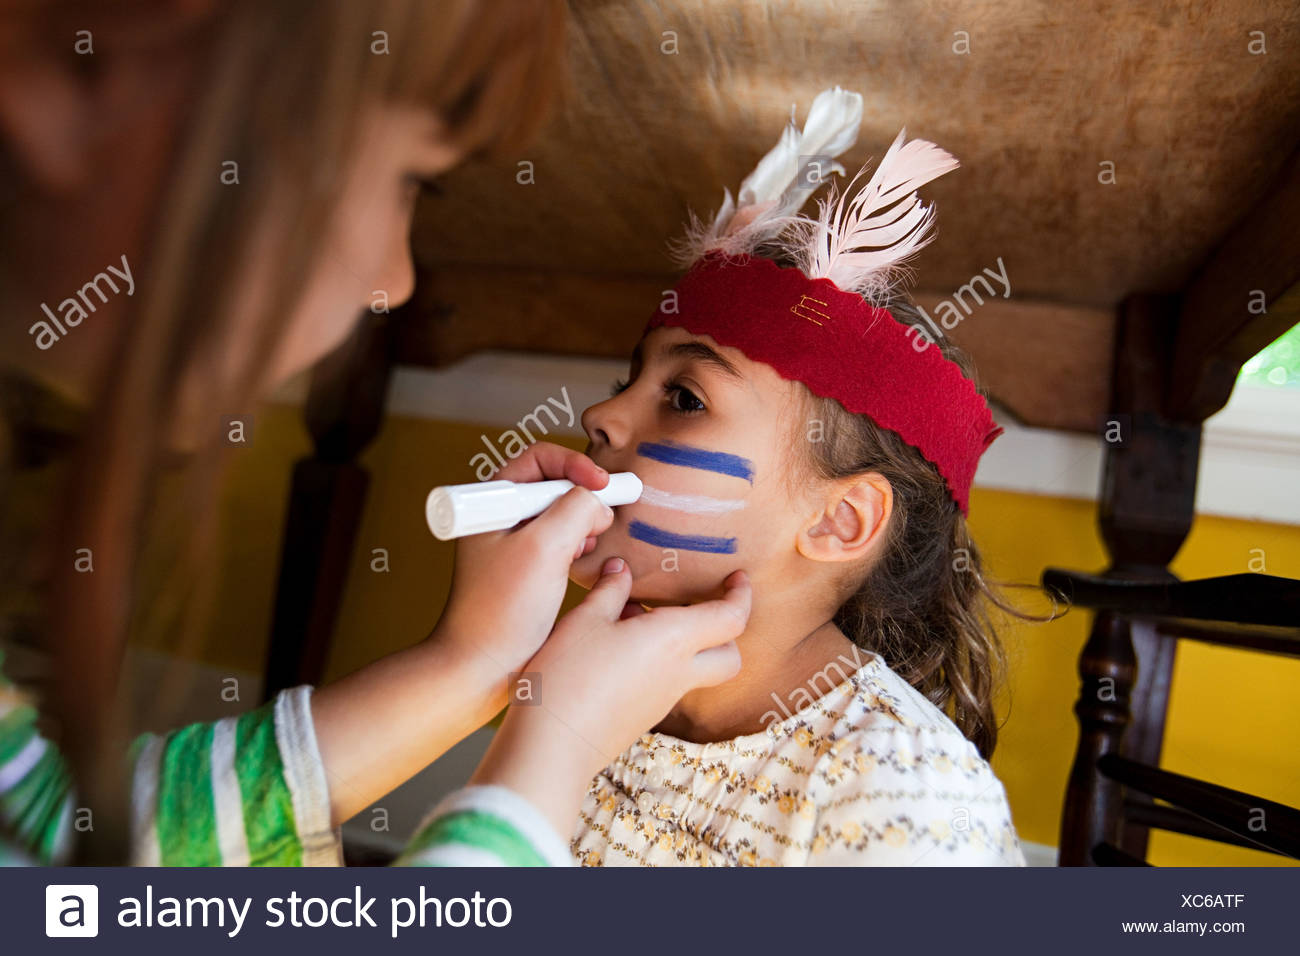 Girl putting Native American face paint on another girl - Stock Image